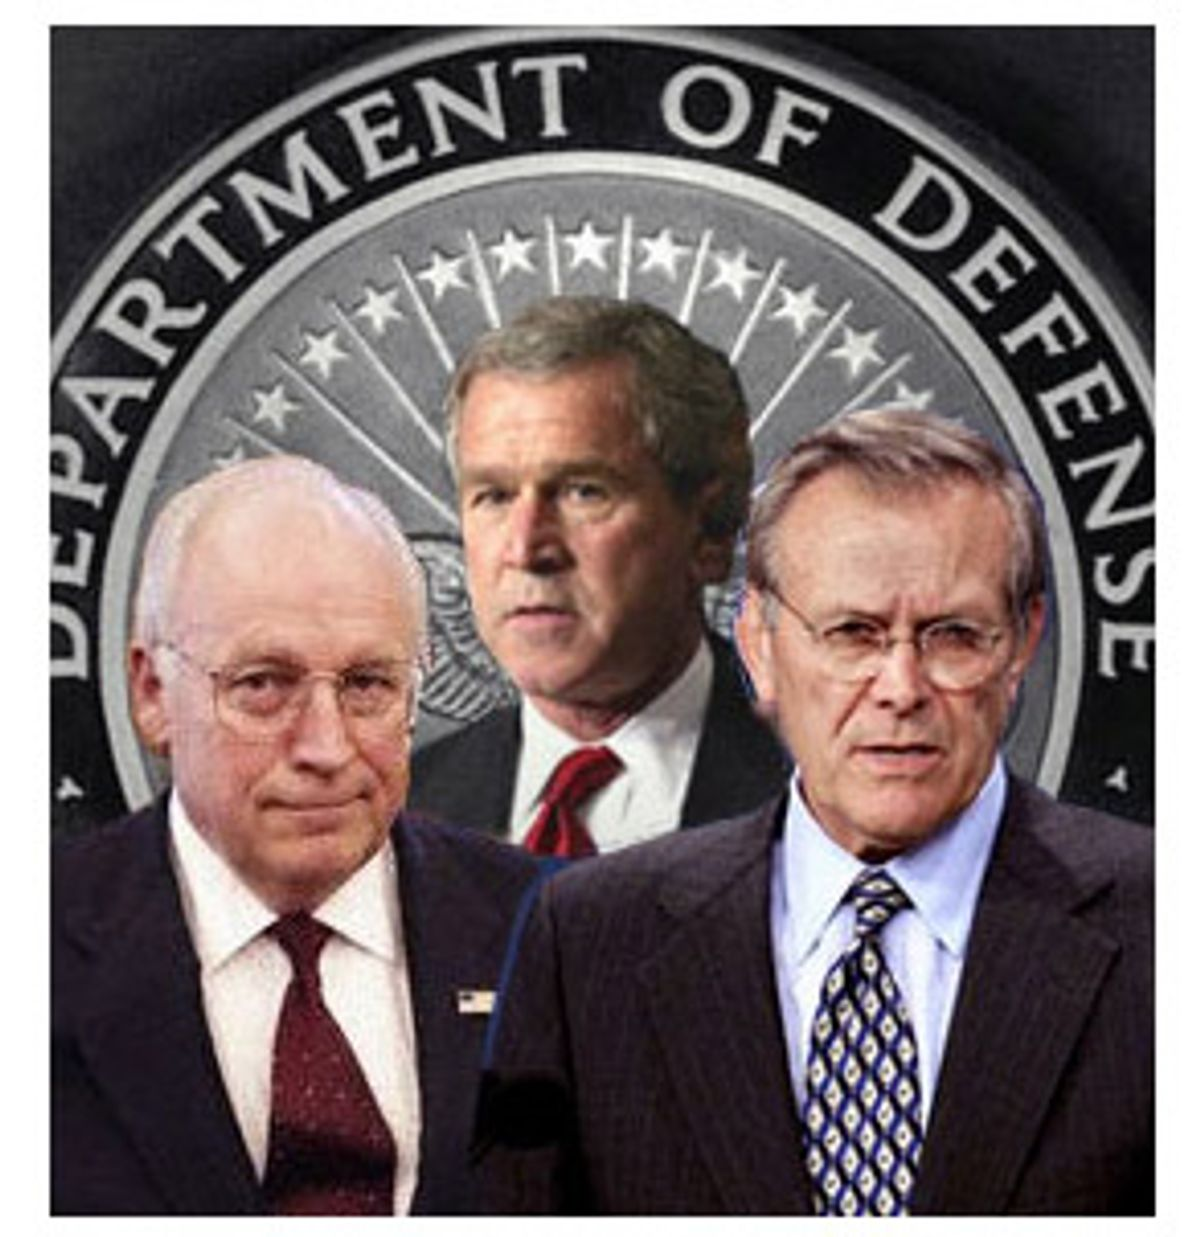 The new Pentagon papers